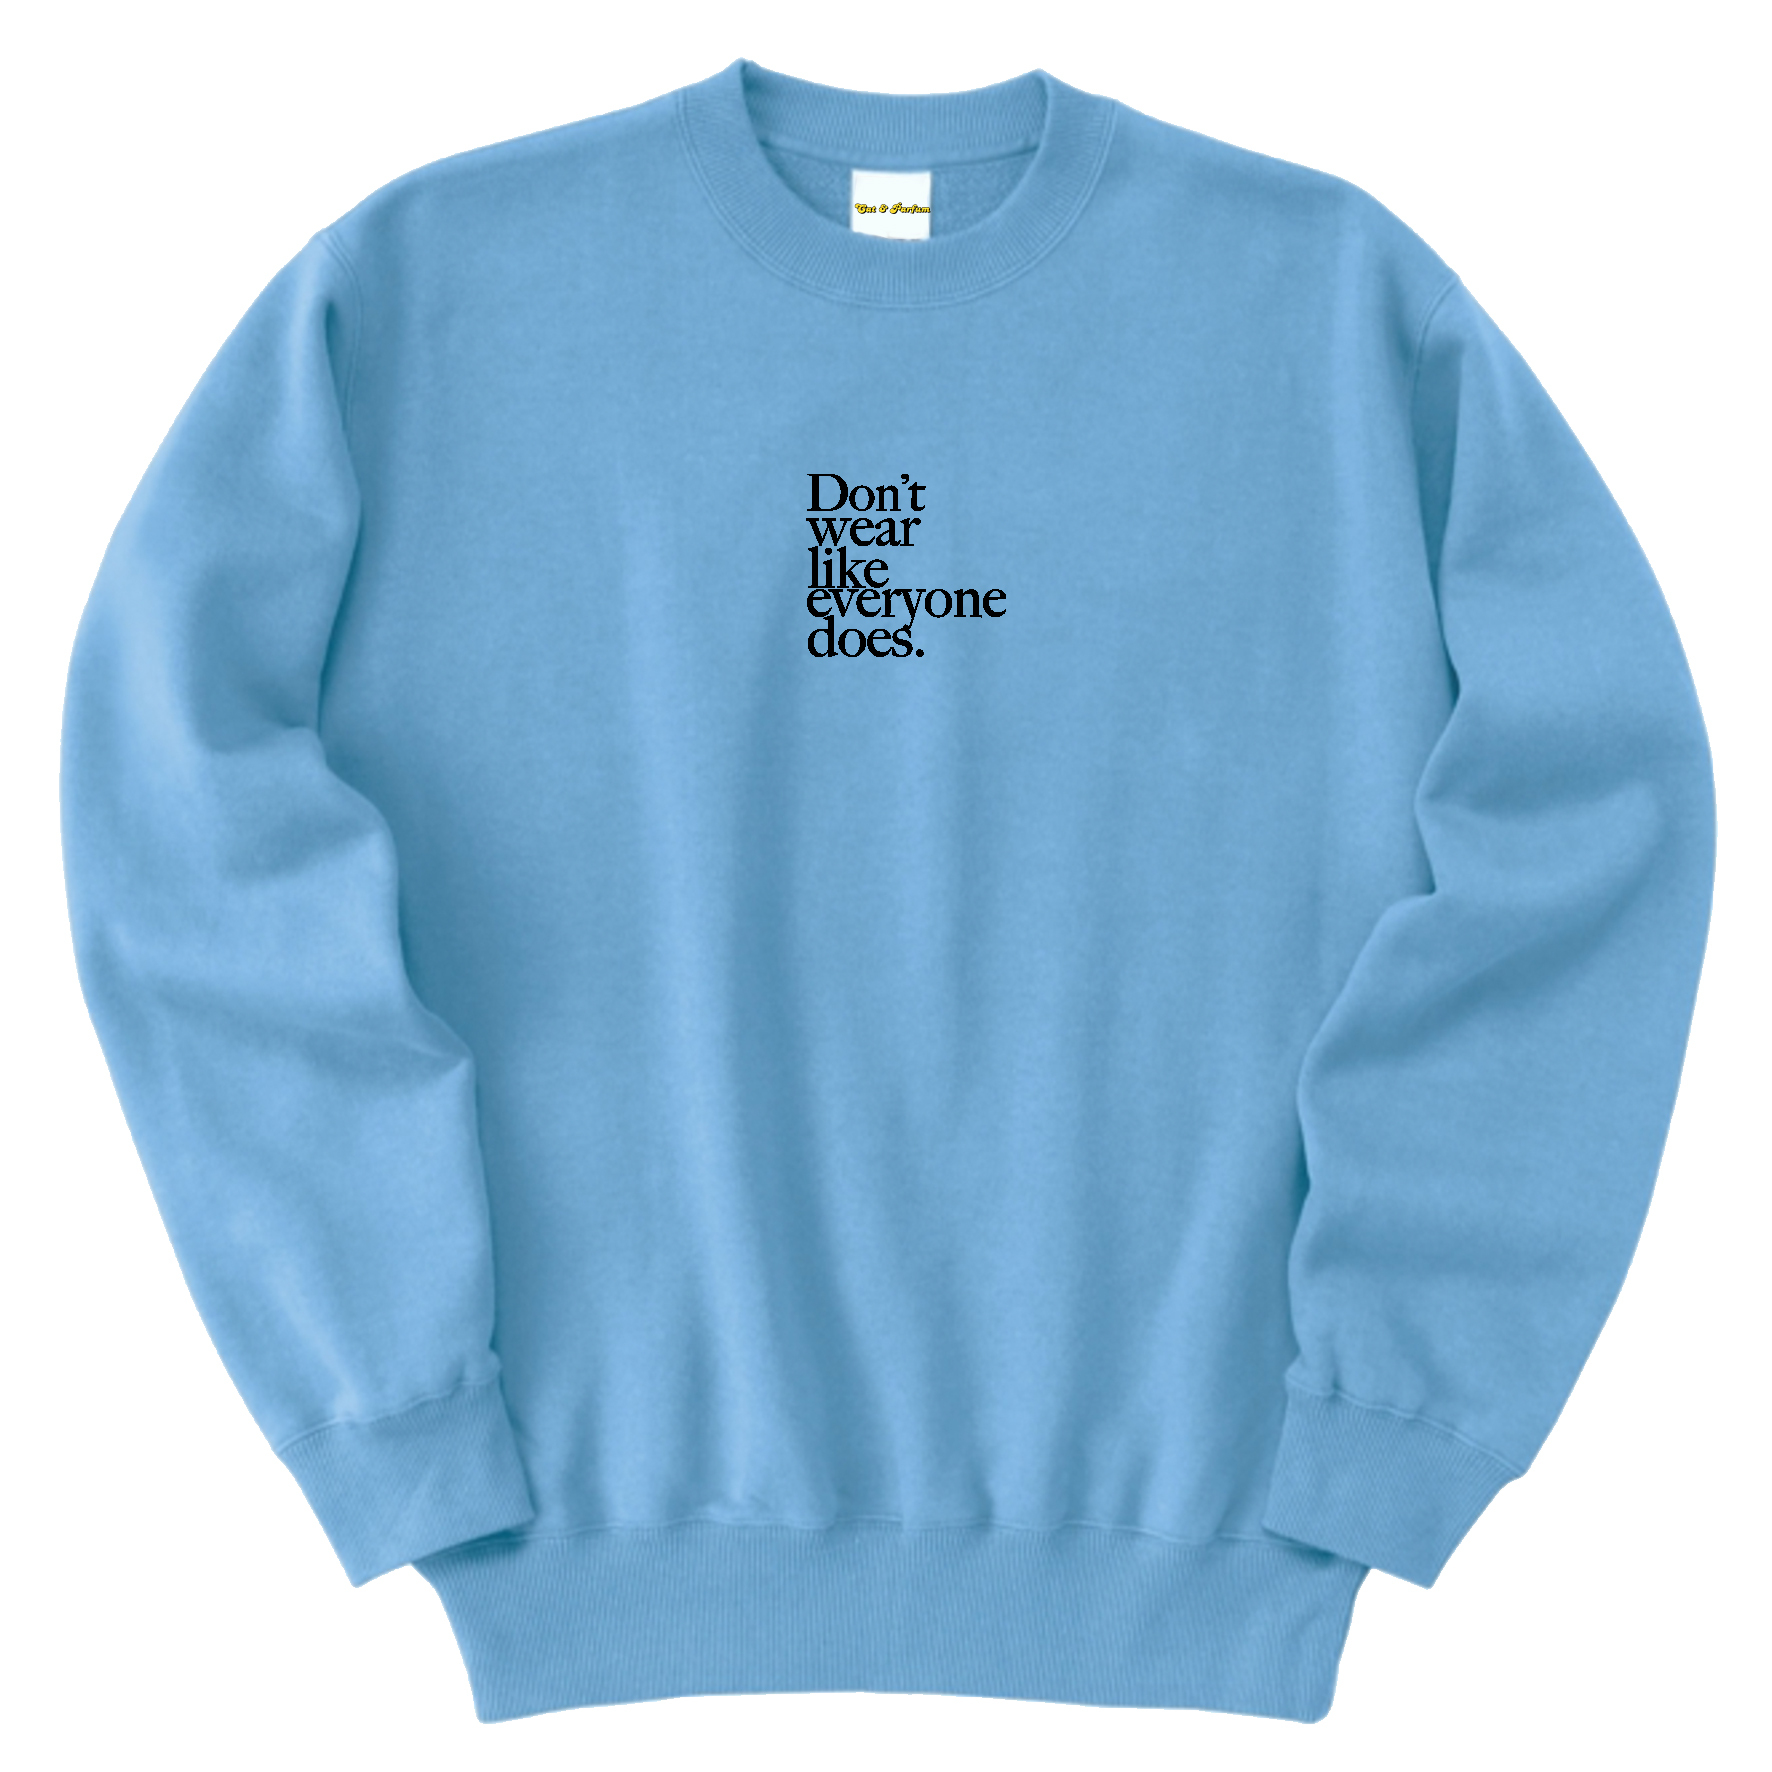 Don't wear like everyone does. Embroidery Sweat